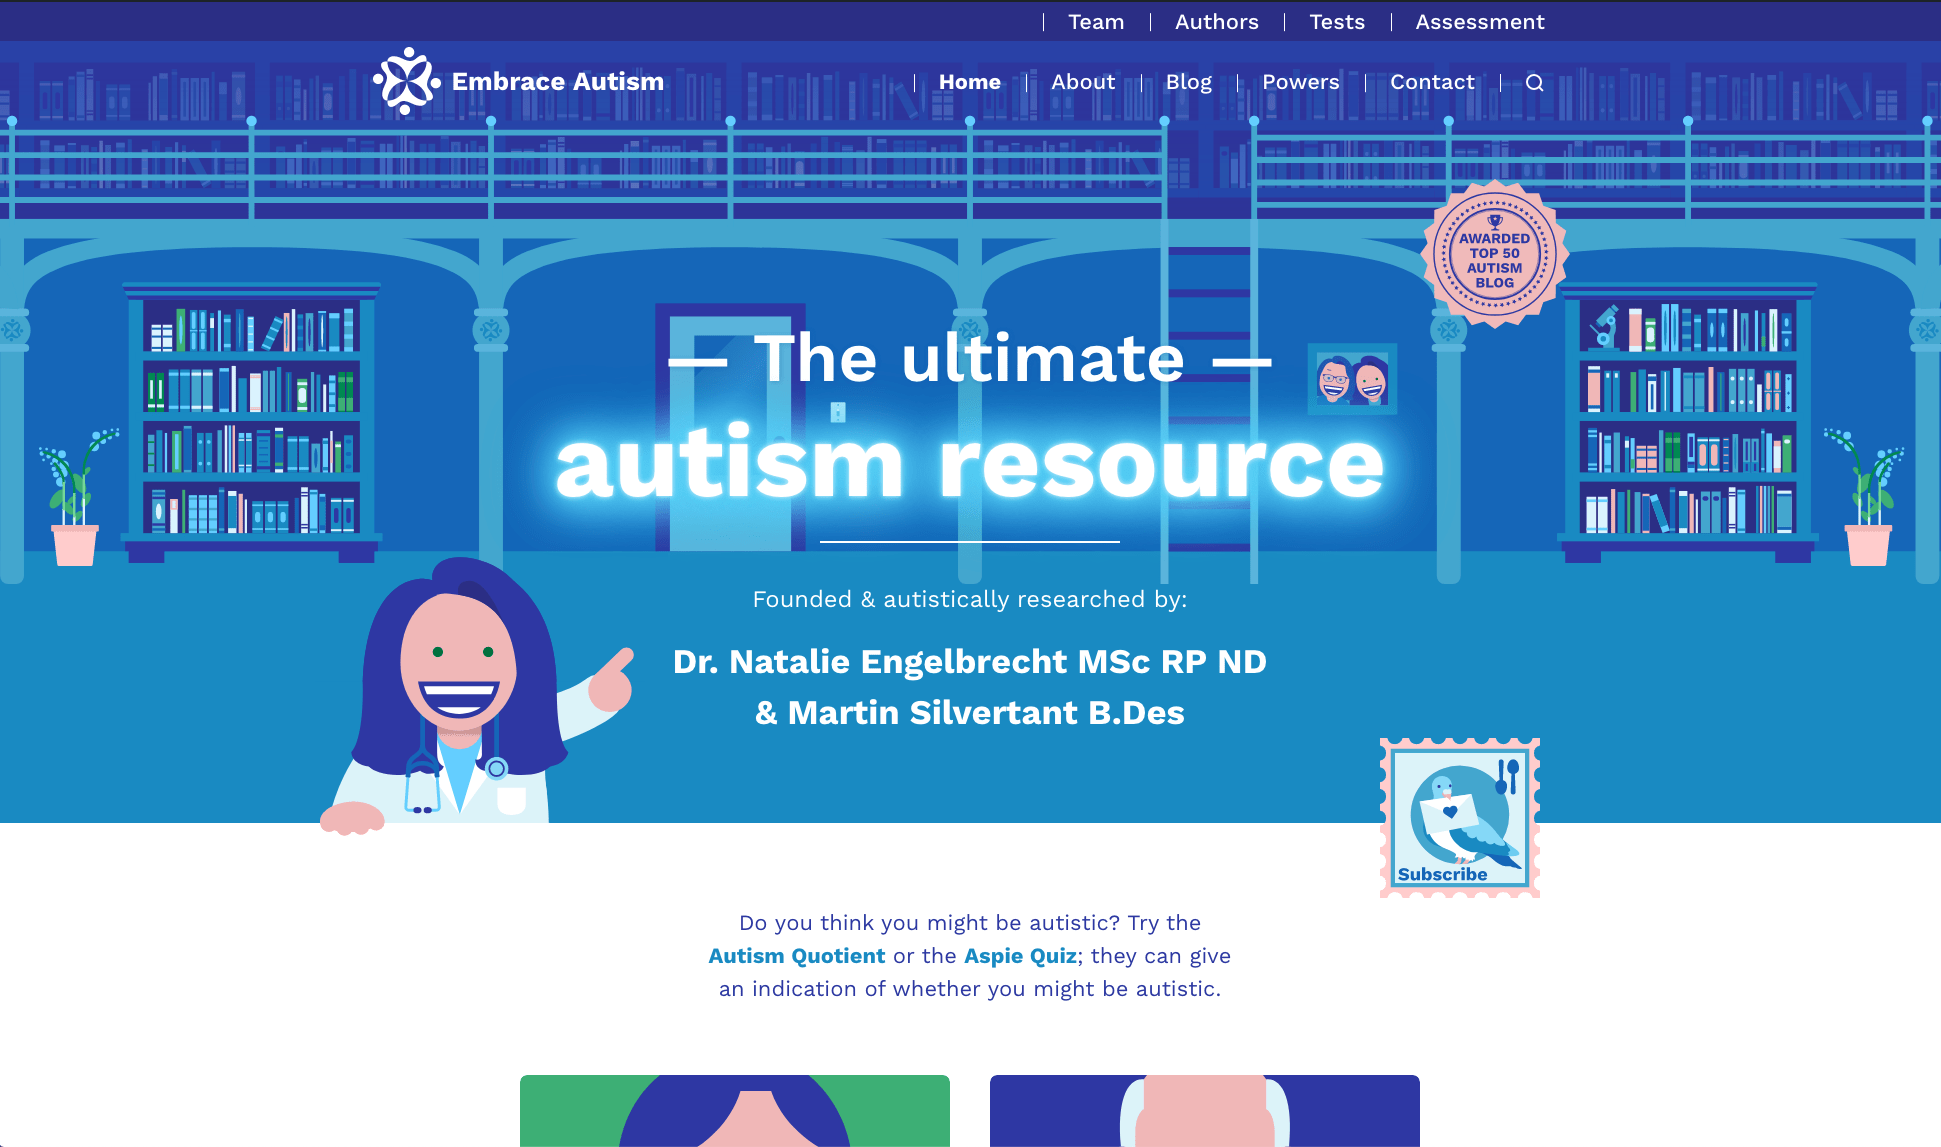 A screenshot of our home page as it appeared since the update in May 2021.